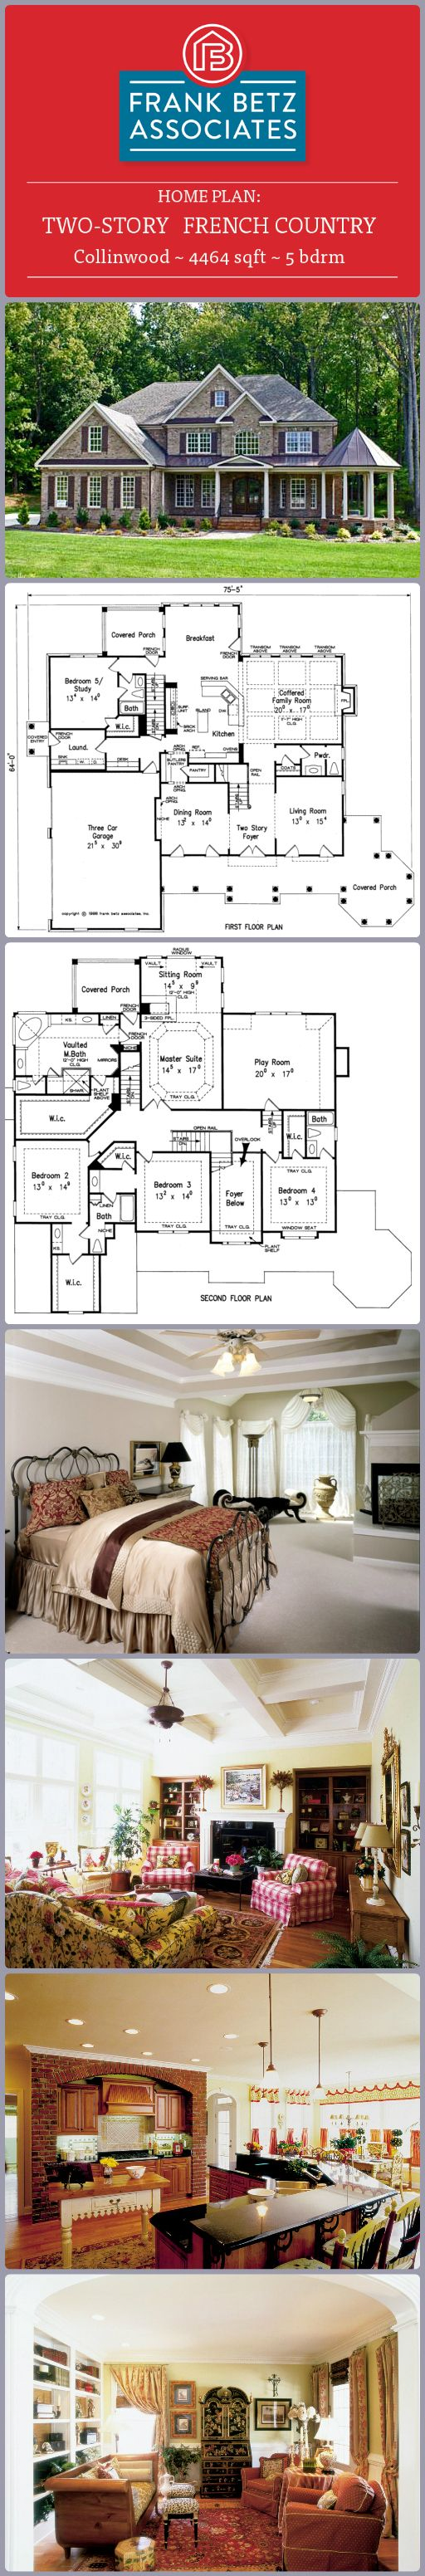 Collinwood: 4464 sqft, 5 bdrm, two-story French Country house plan by Frank Betz Associates, Inc.